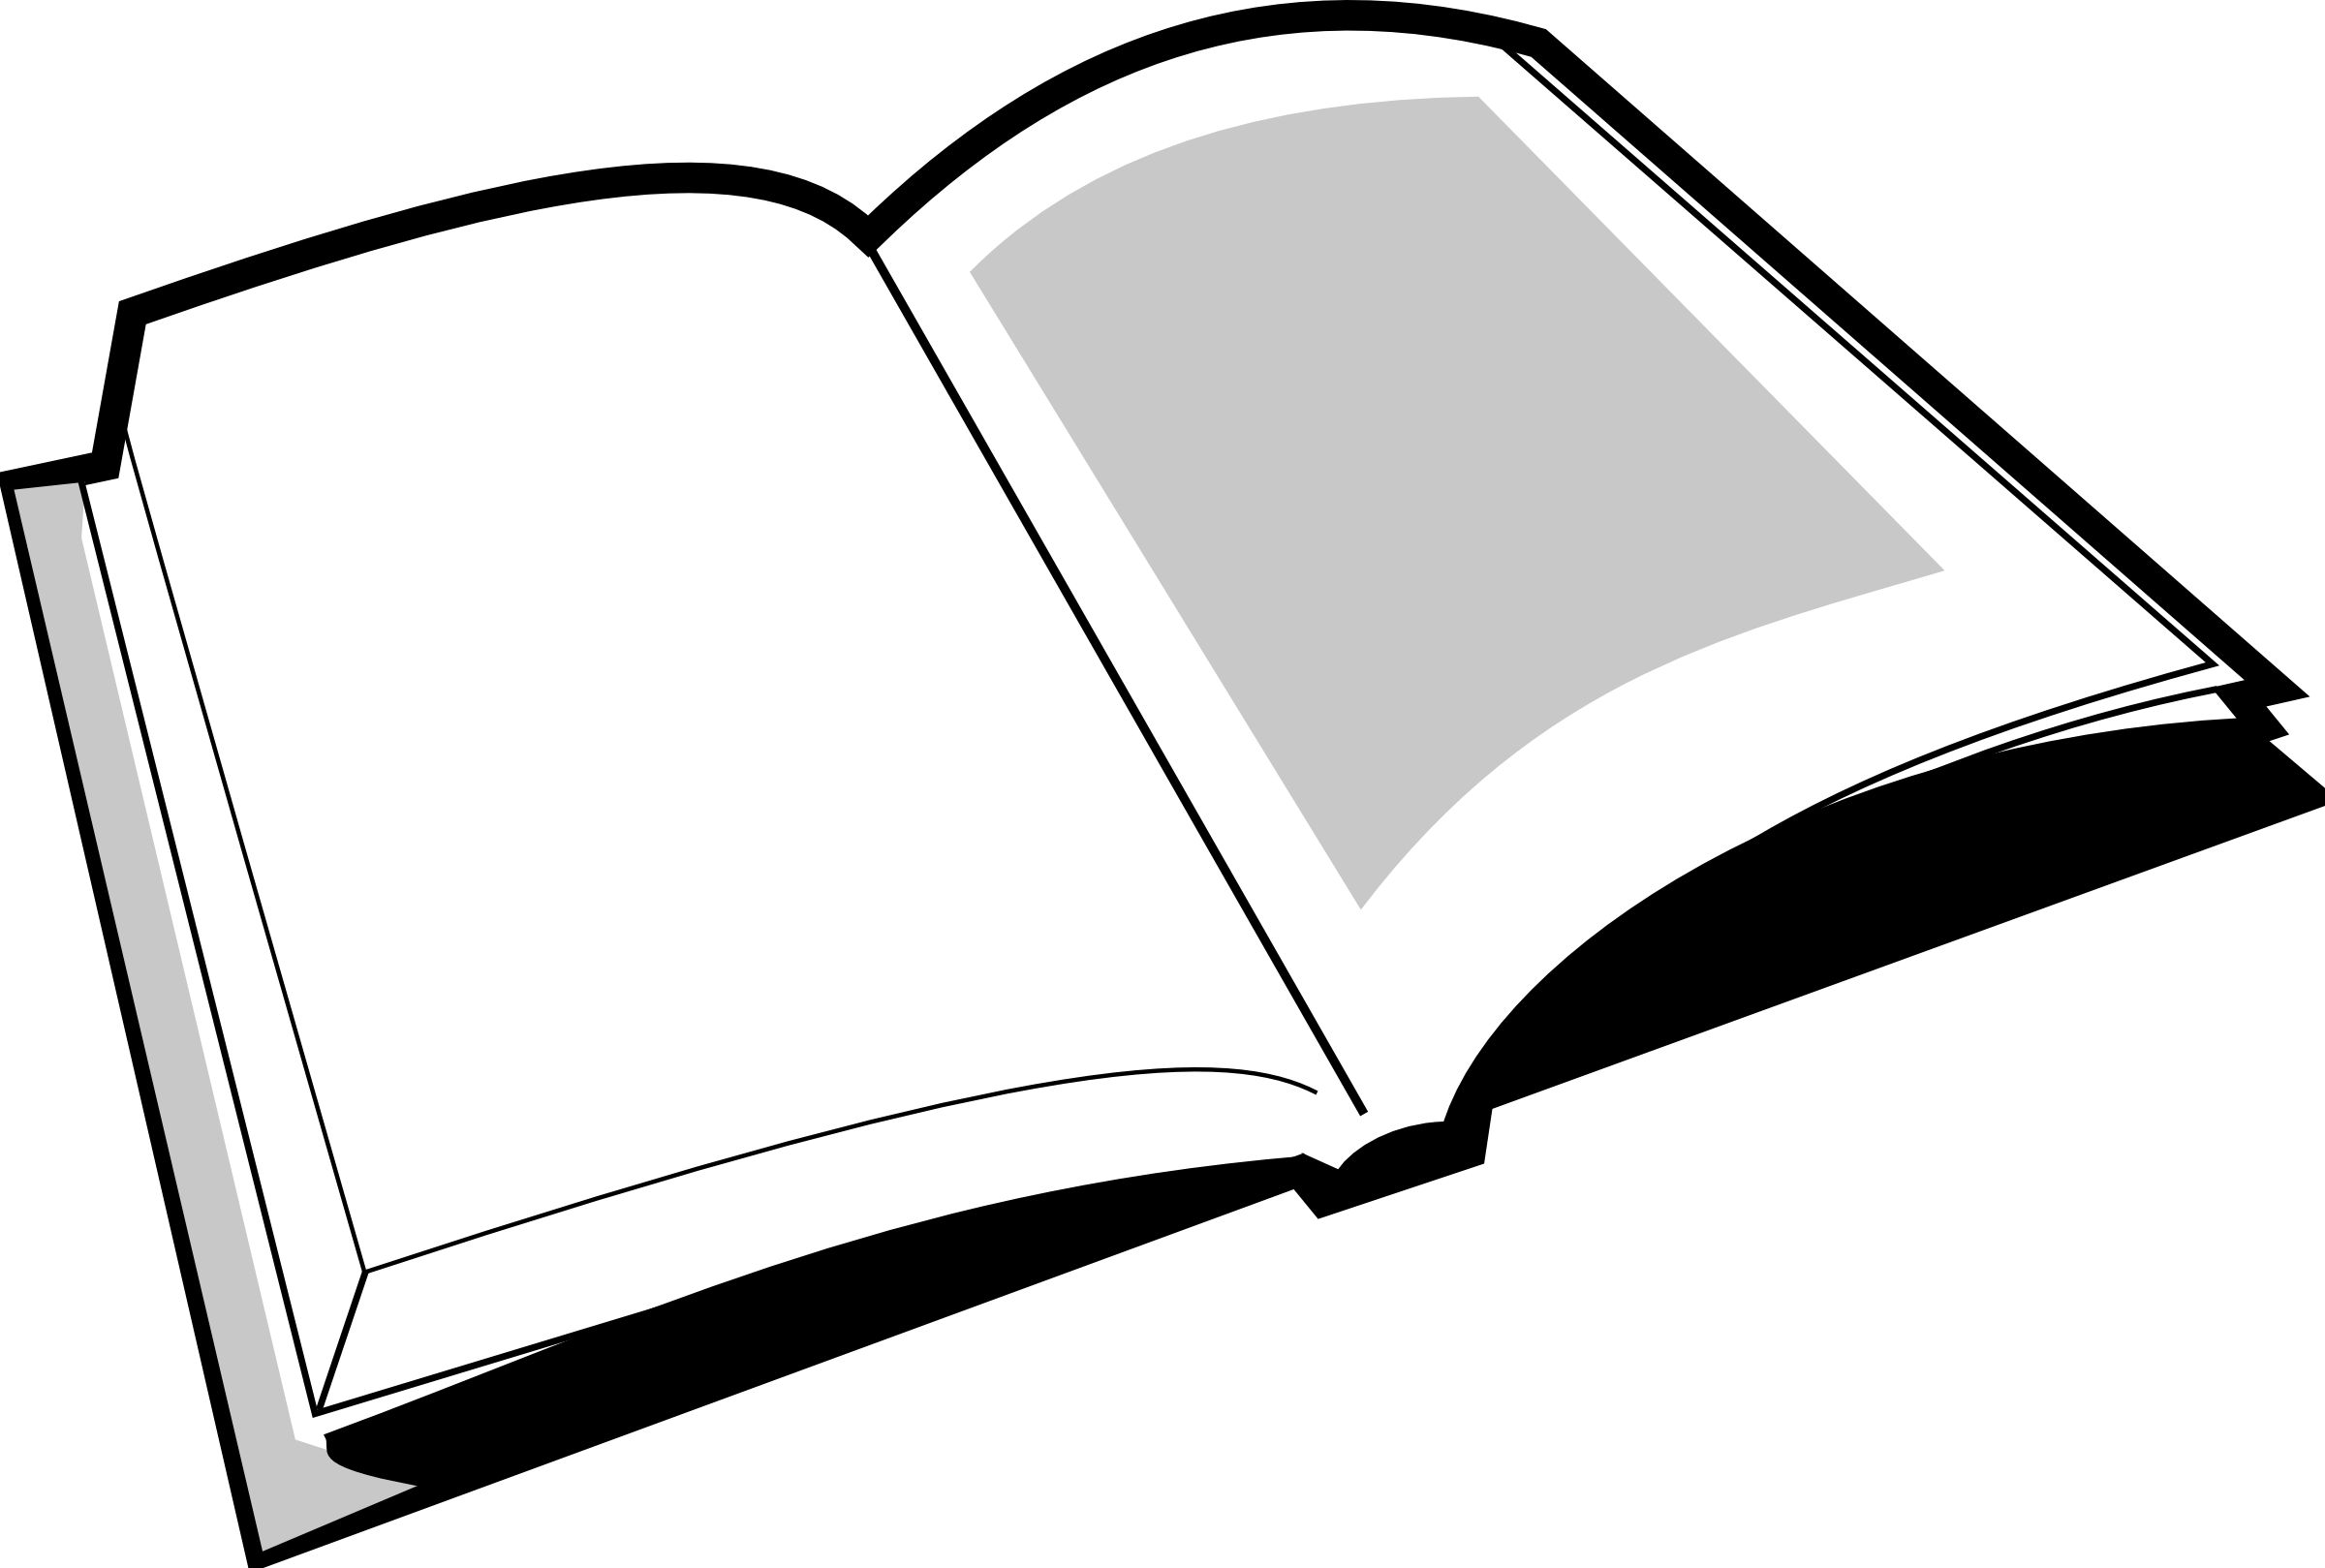 Book  black and white free open book clipart clip art images 6